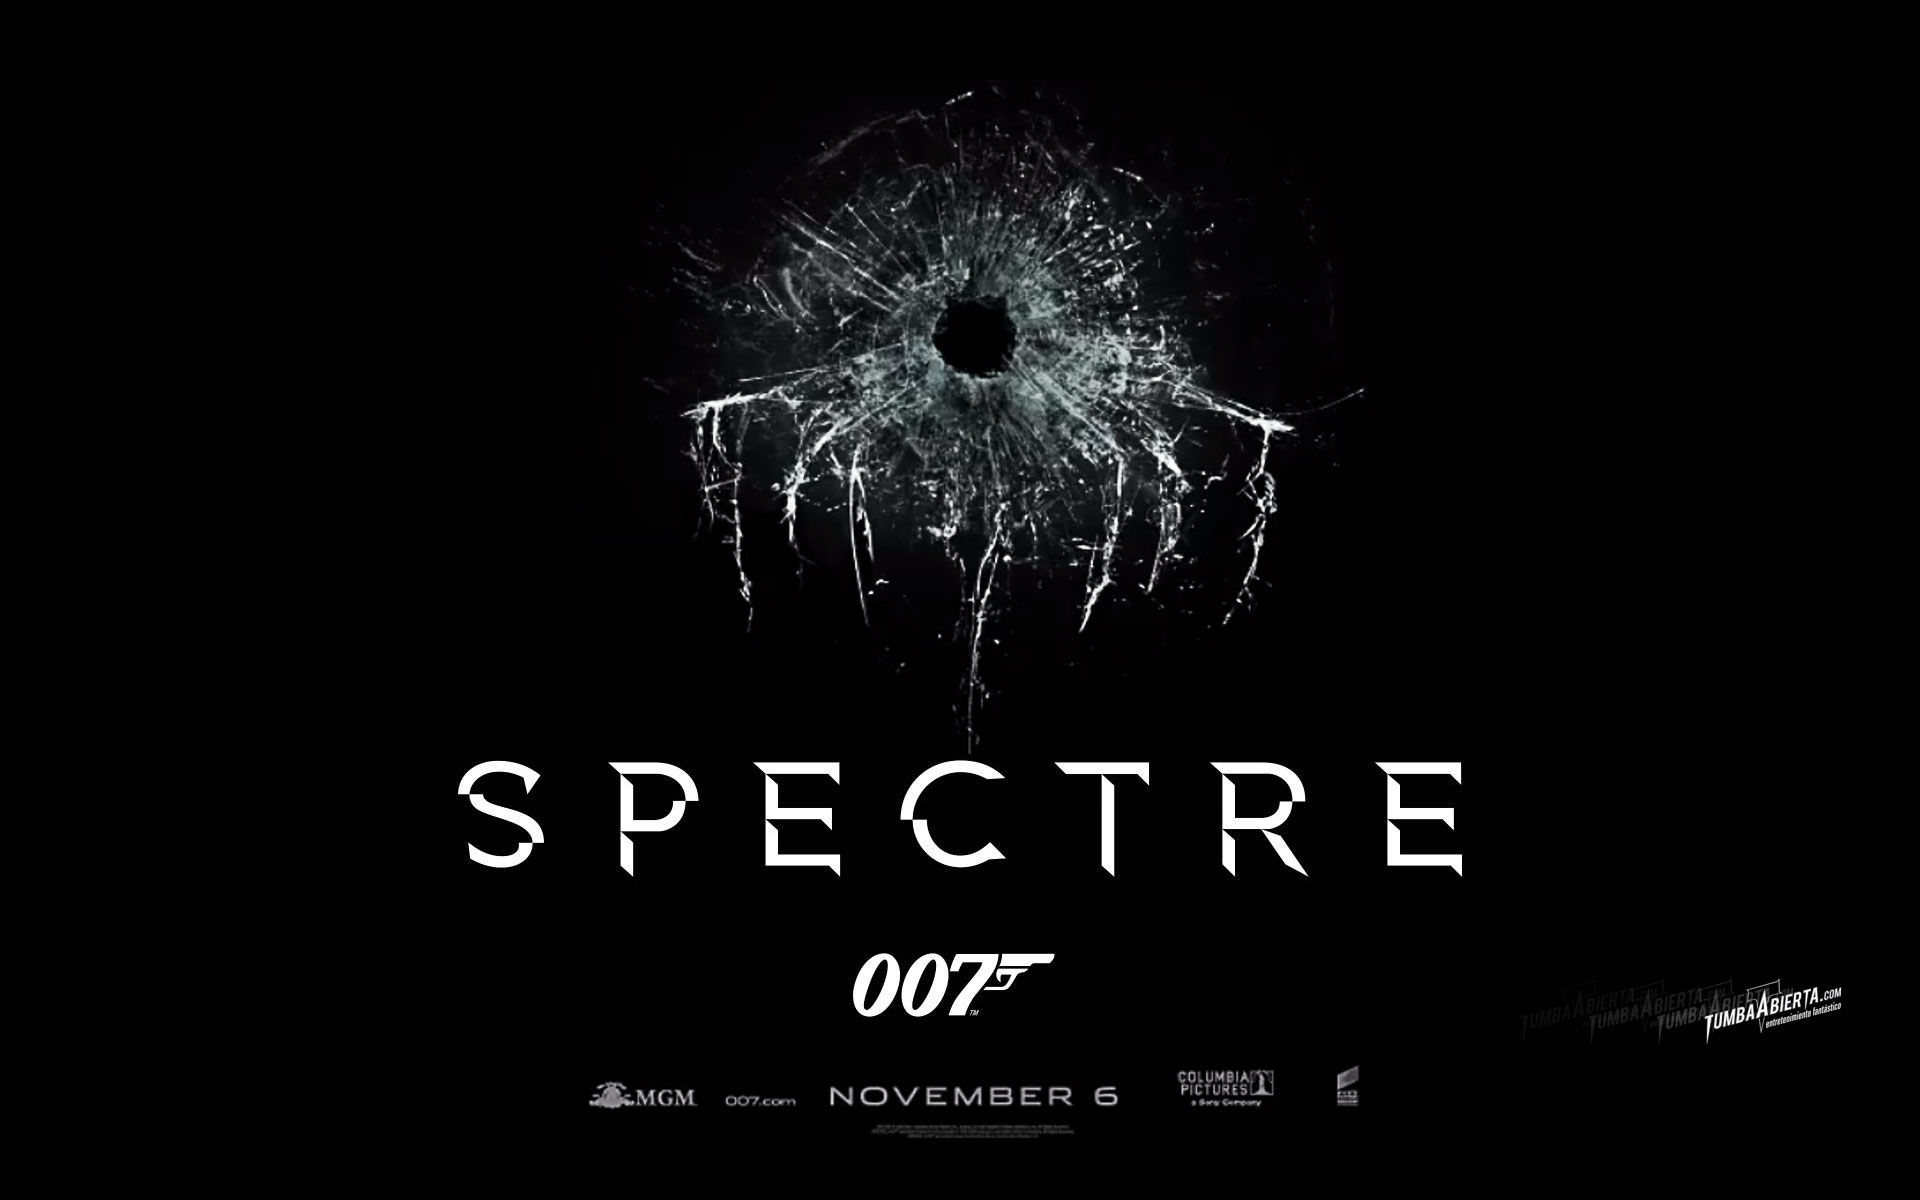 Wallpaper. Spectre. Bond 007 24